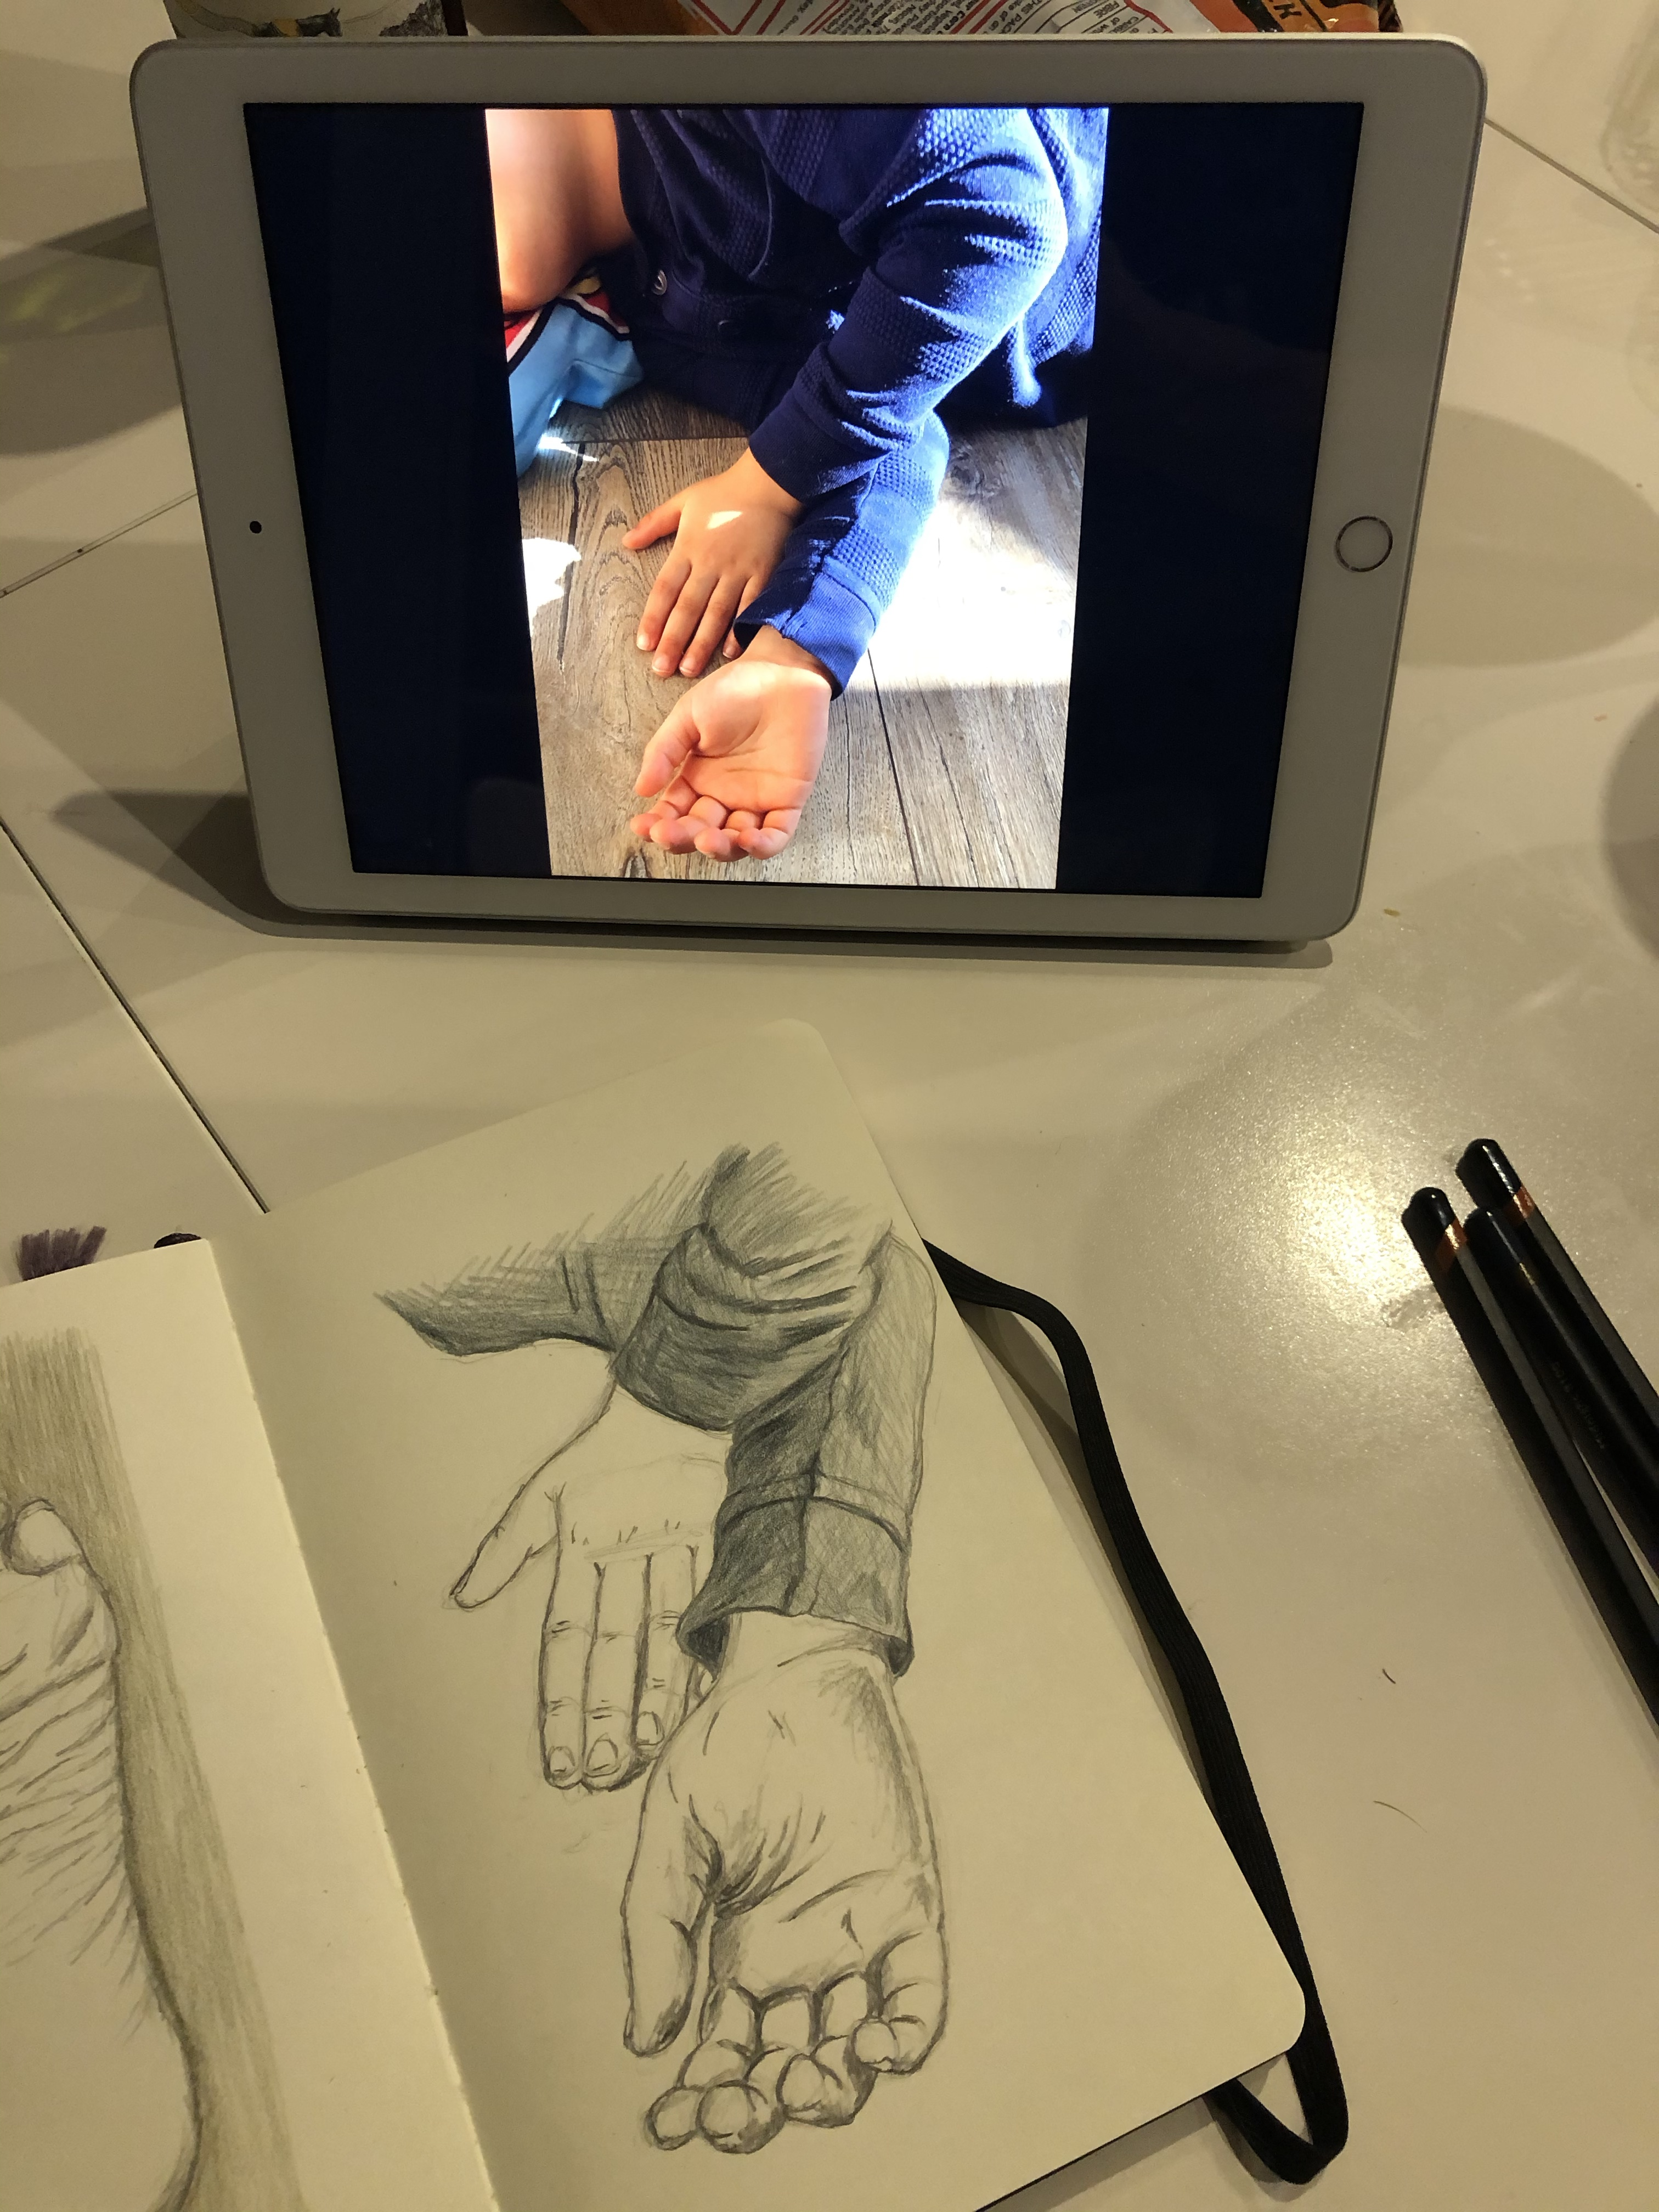 Notebook with sketch next to an iPad displaying a picture of hands.